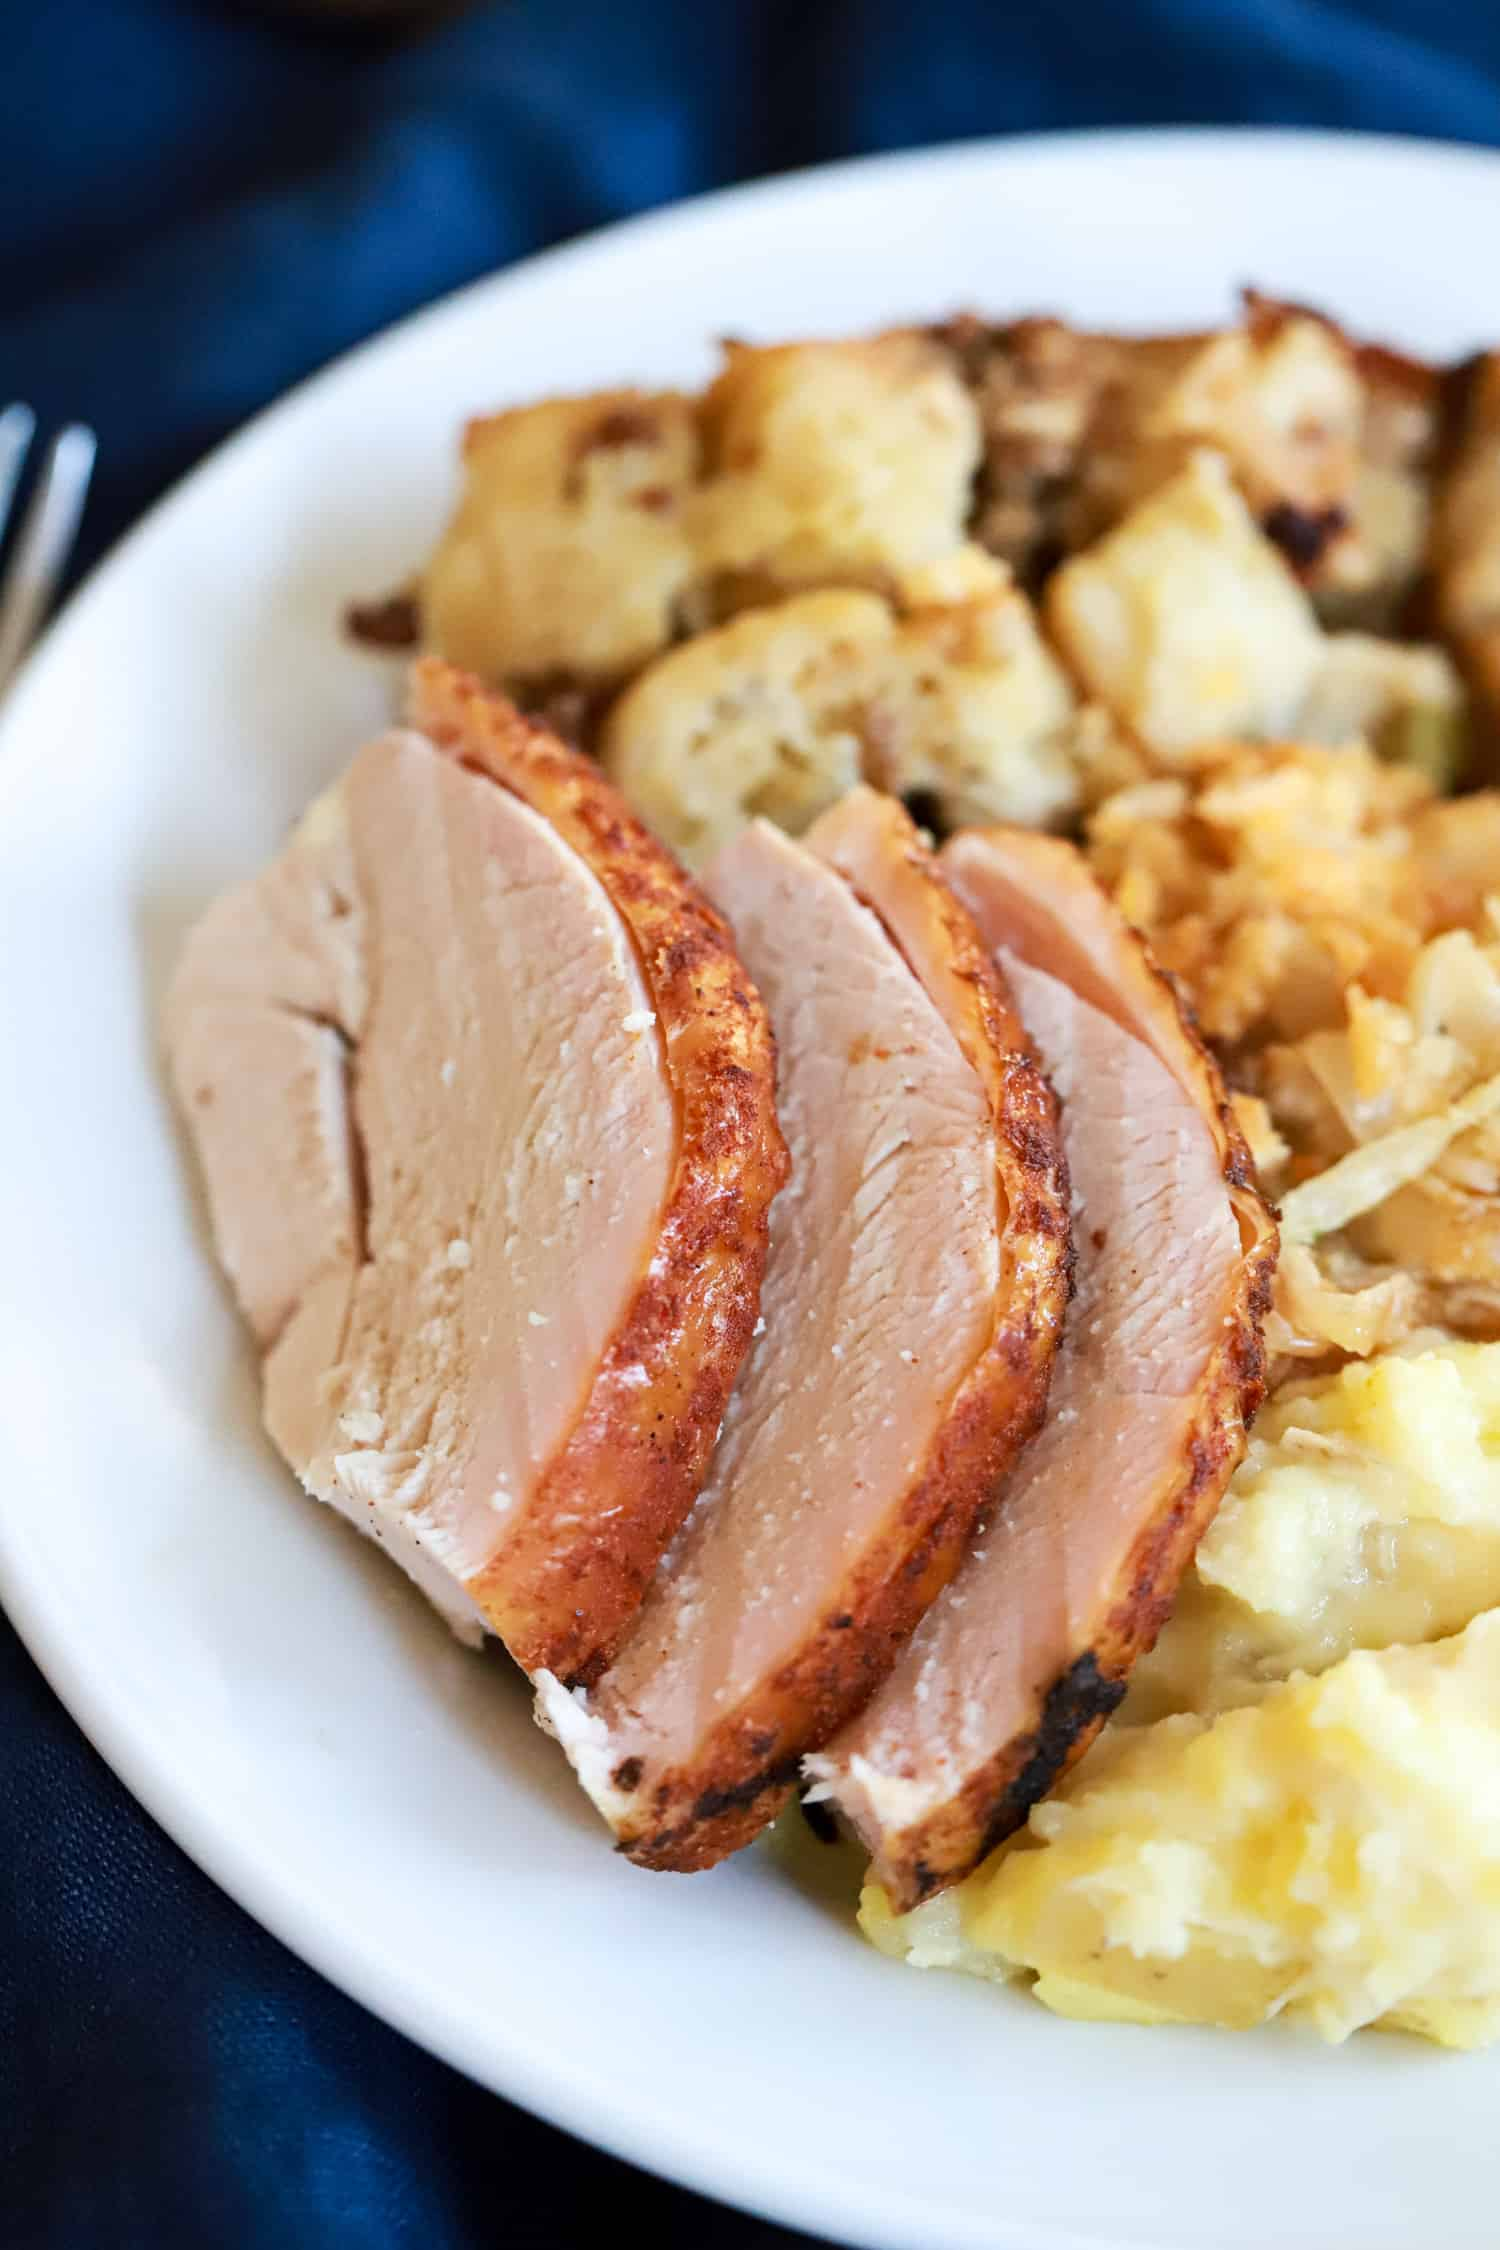 slices of turkey on a white plate with thanksgiving side dishes.